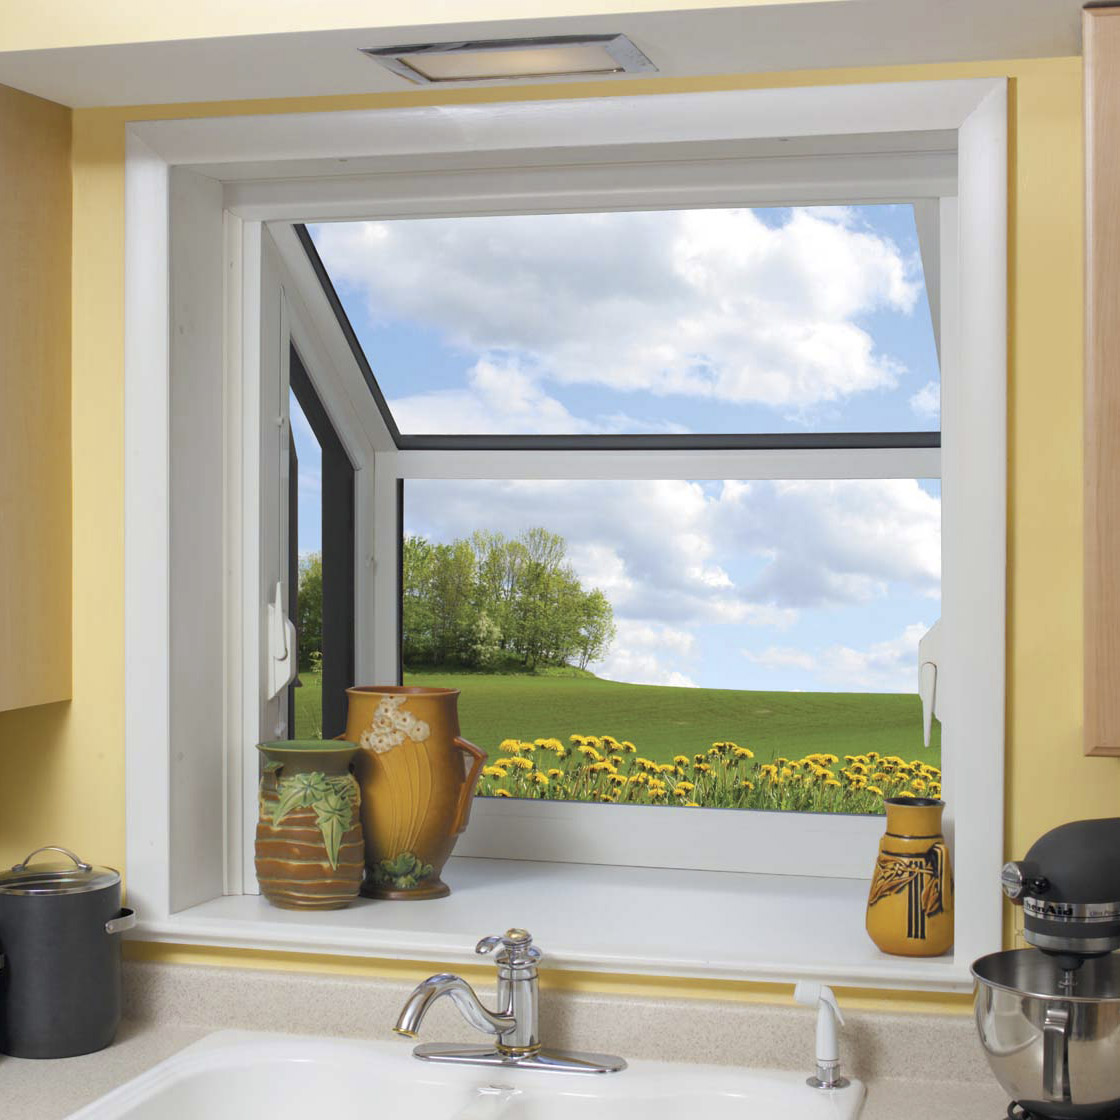 Mainely vinyl garden windows roof windows for Garden window